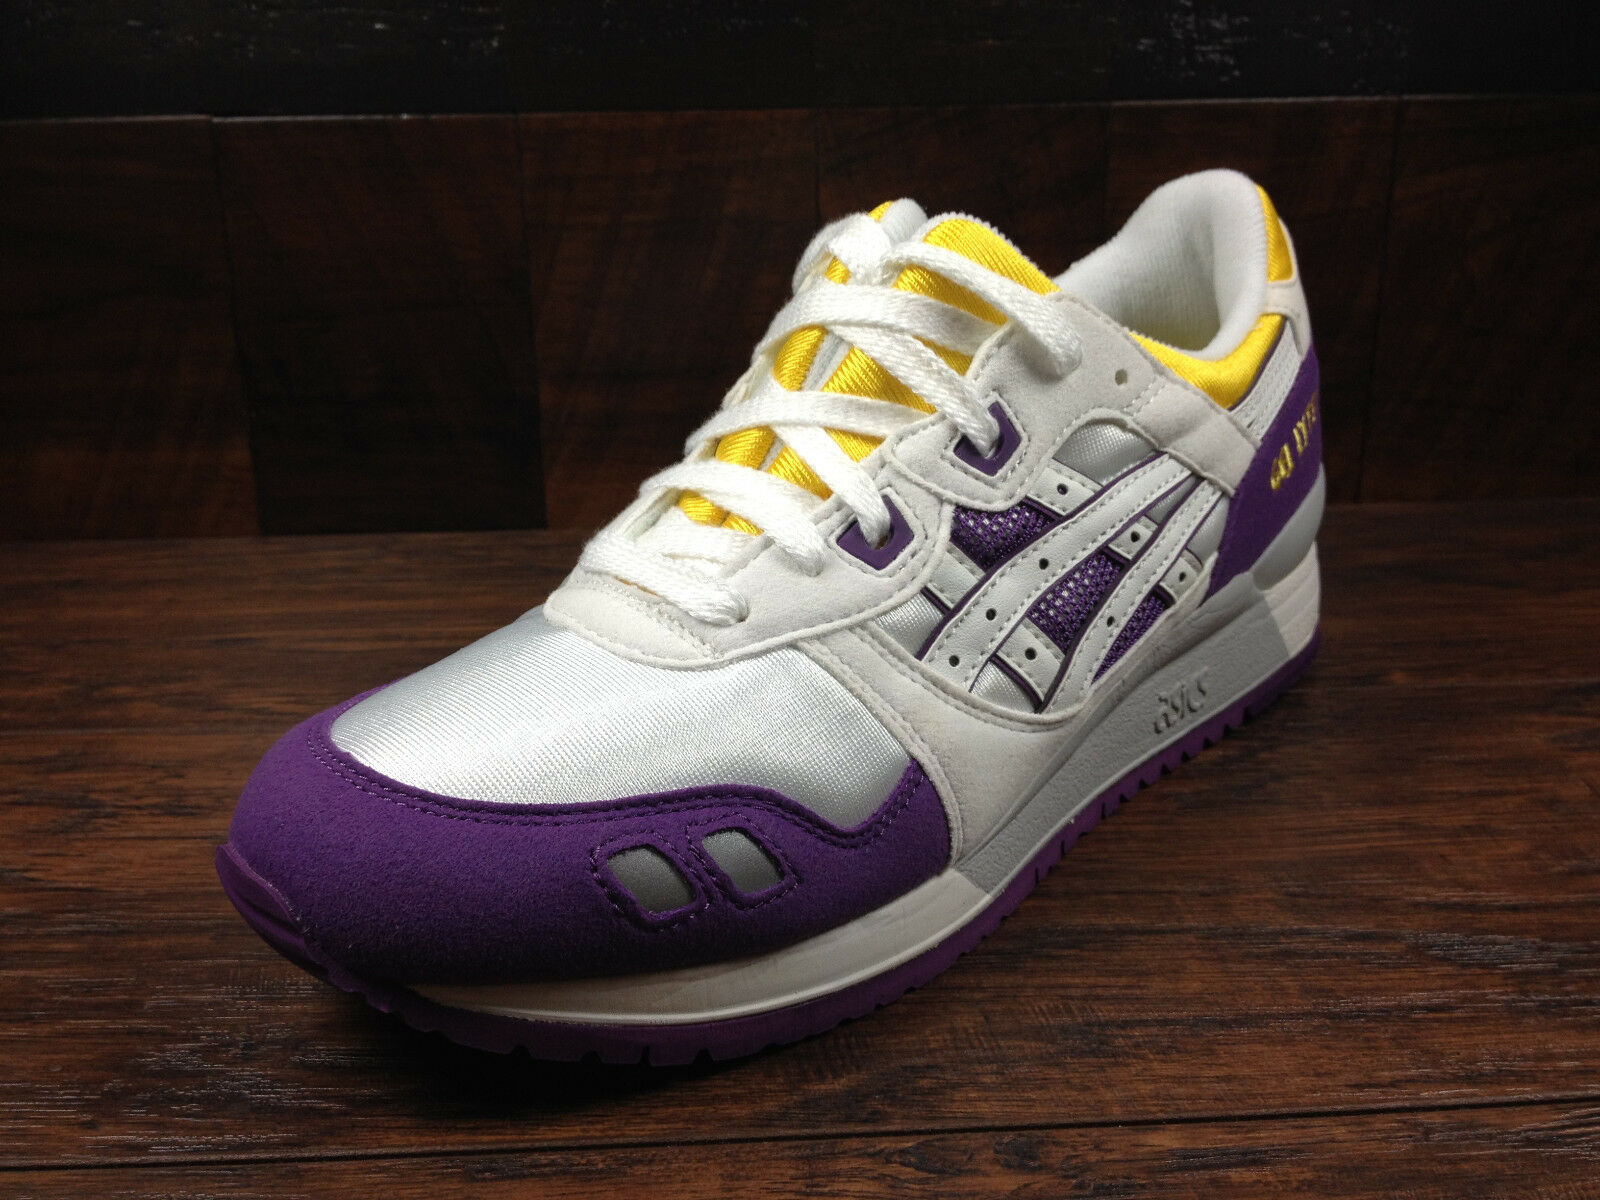 Asics Gel-Lyte 3 III Lakers (Blanco/Púrpura/Amarillo) [T305N-0101] Lakers III Correr Hombres 677d1f